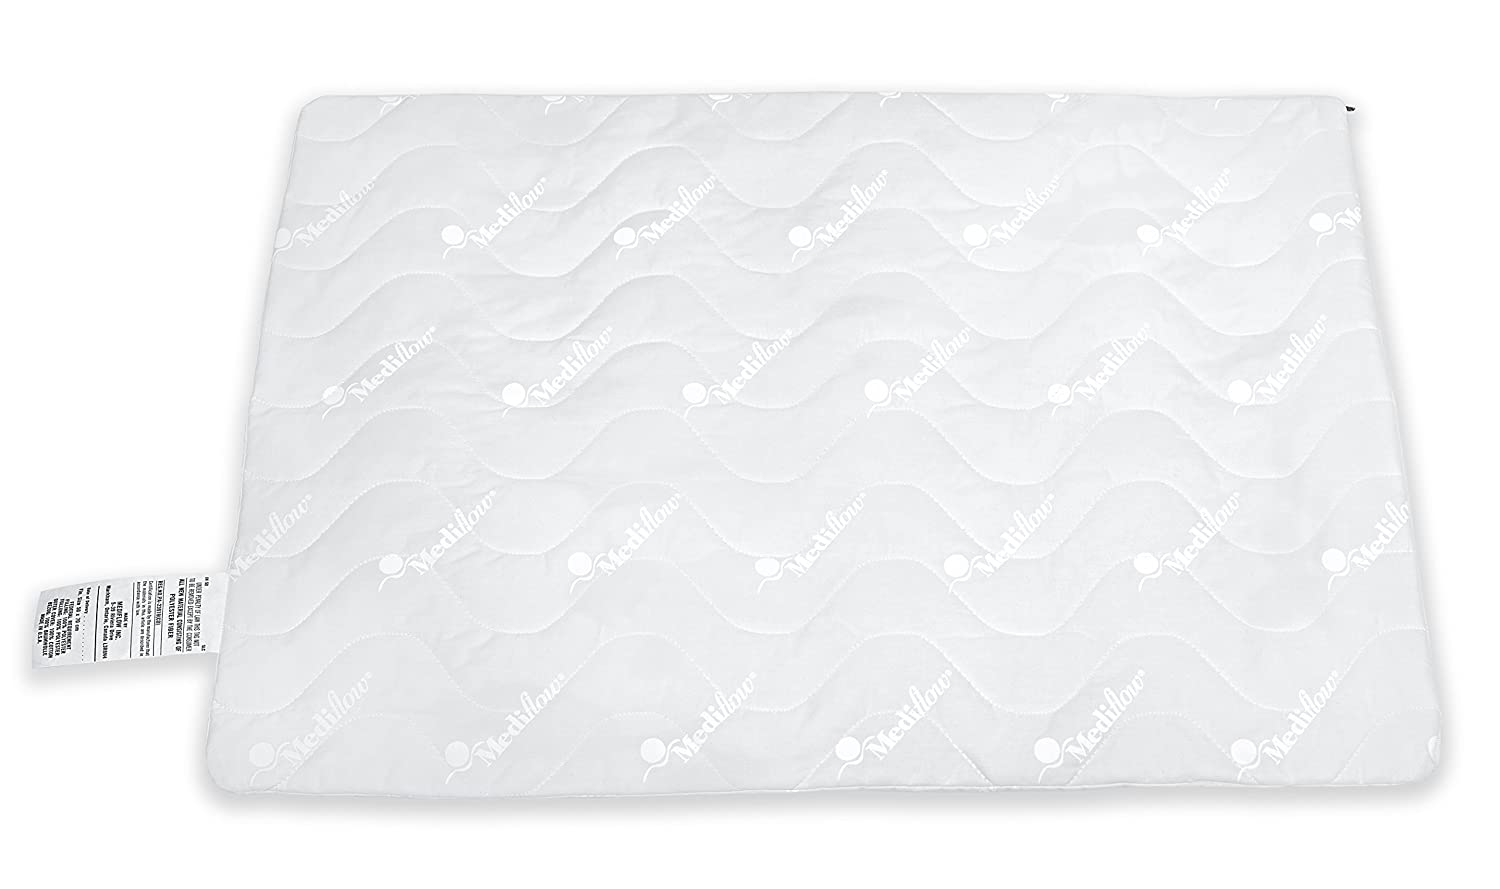 Mediflow Quilted Pillow Protector 20x28-Inch, Standard/Queen 2690-06